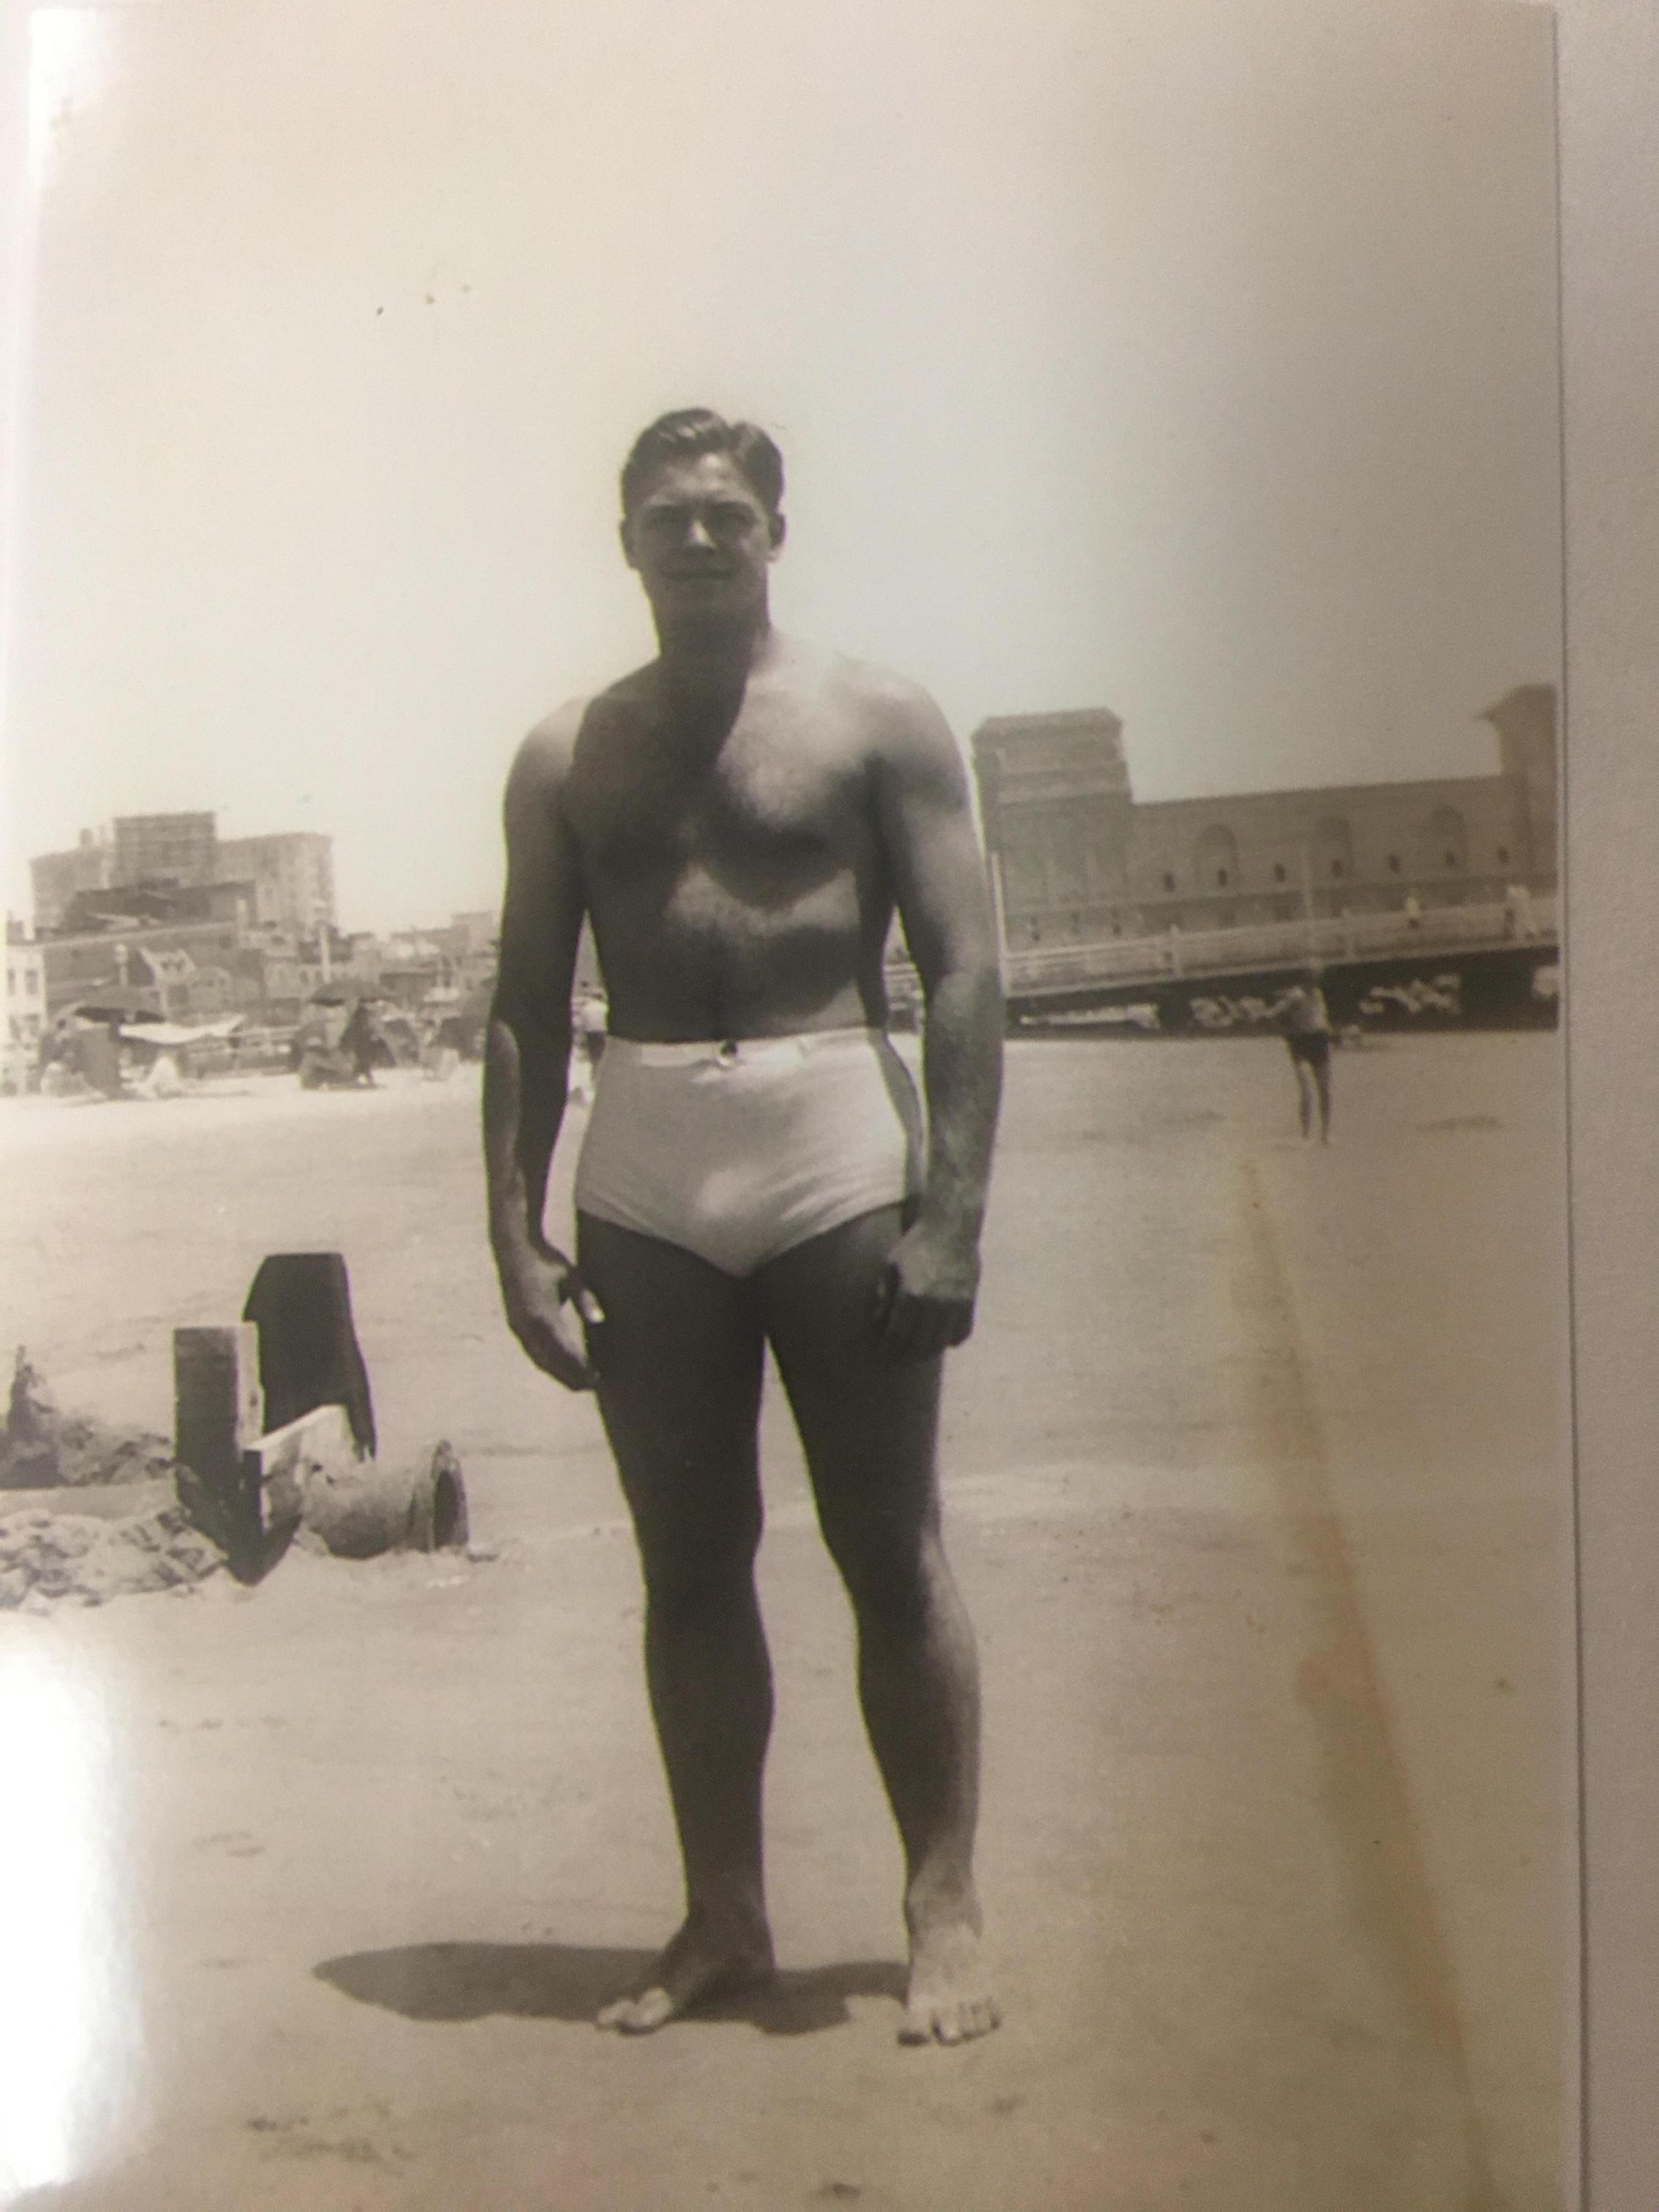 21 years old at Santa Monica Beach 1936 showing his All American physique